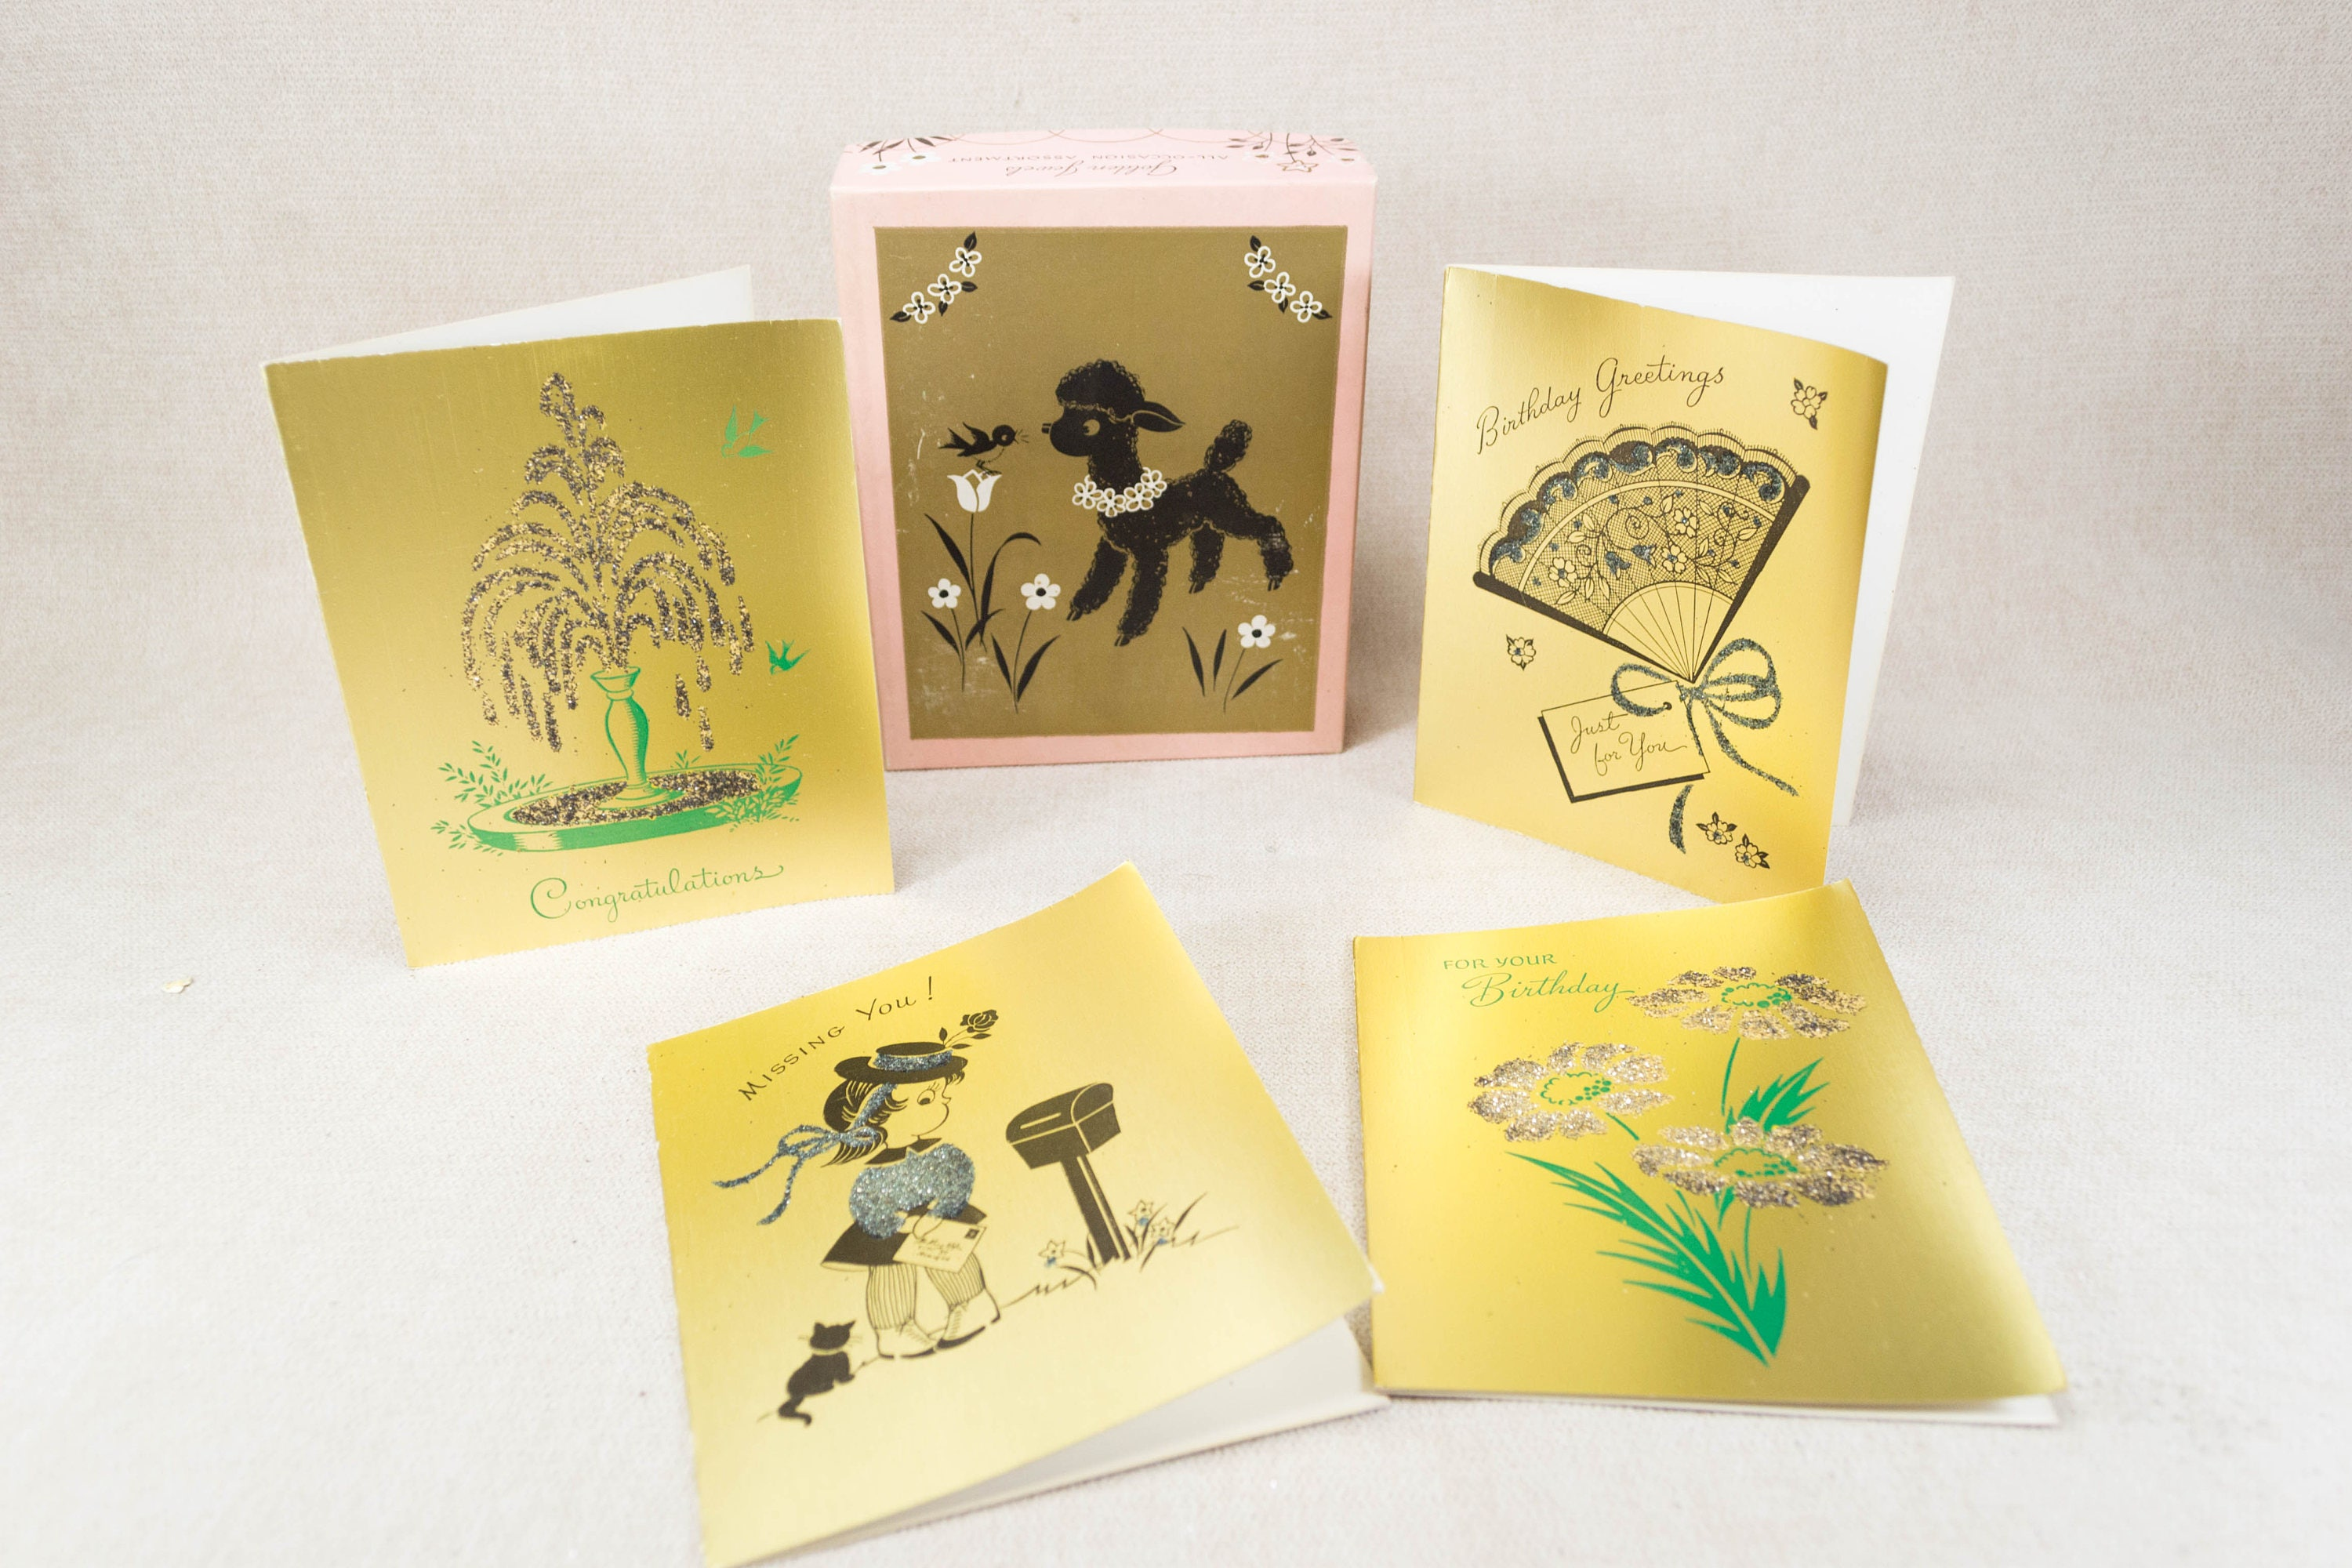 Vintage Unused Greeting Cards In Box Gold With Glitter Accents